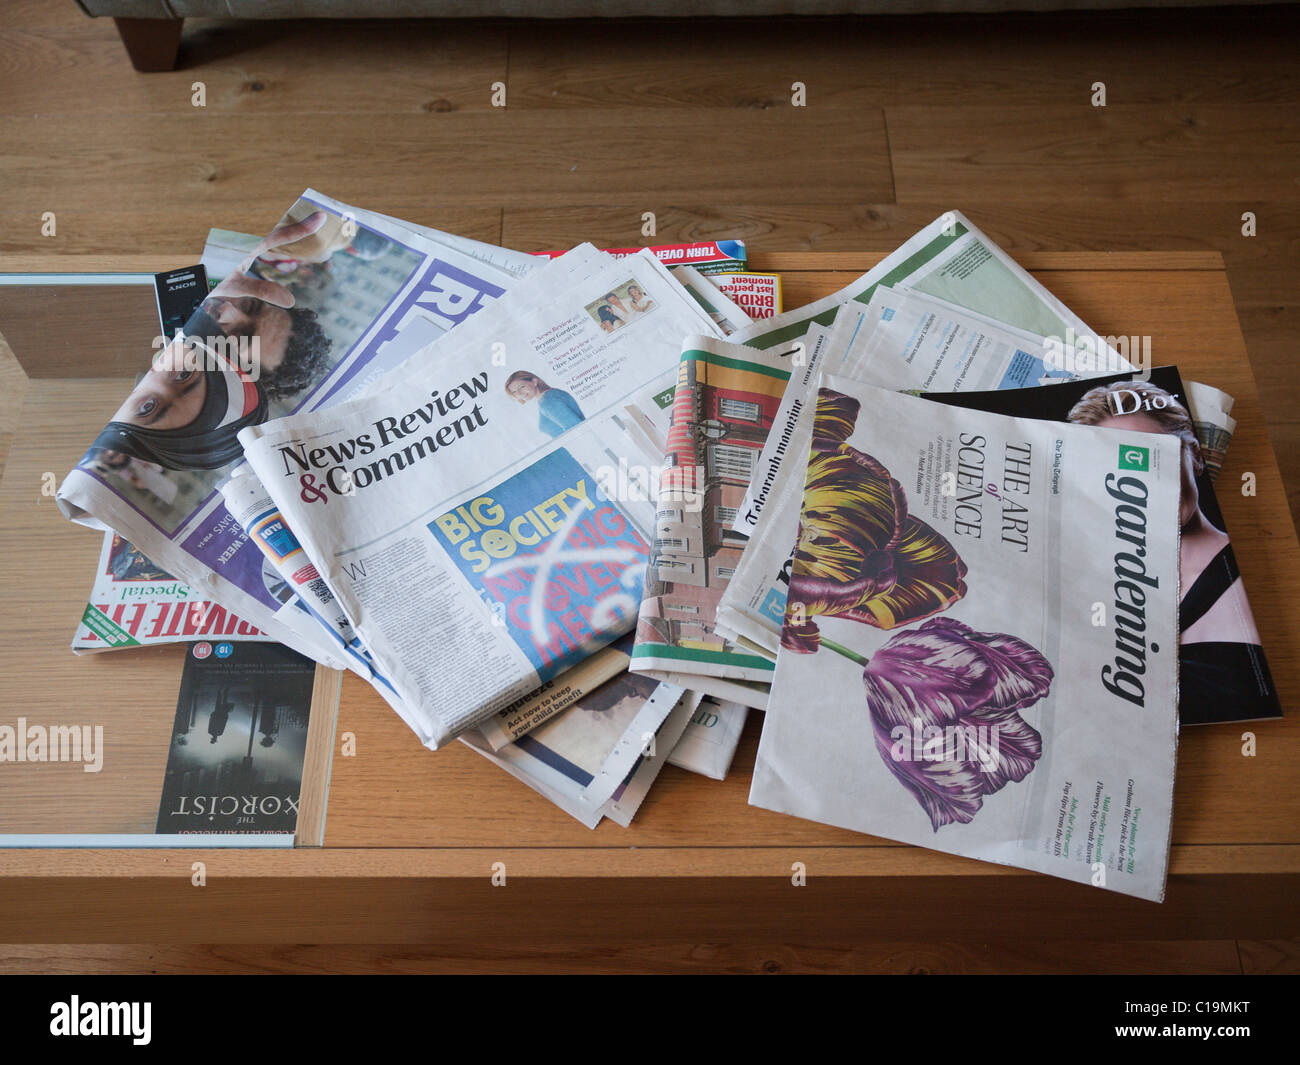 newspapers scattered on a coffee table stock photo: 35249196 - alamy